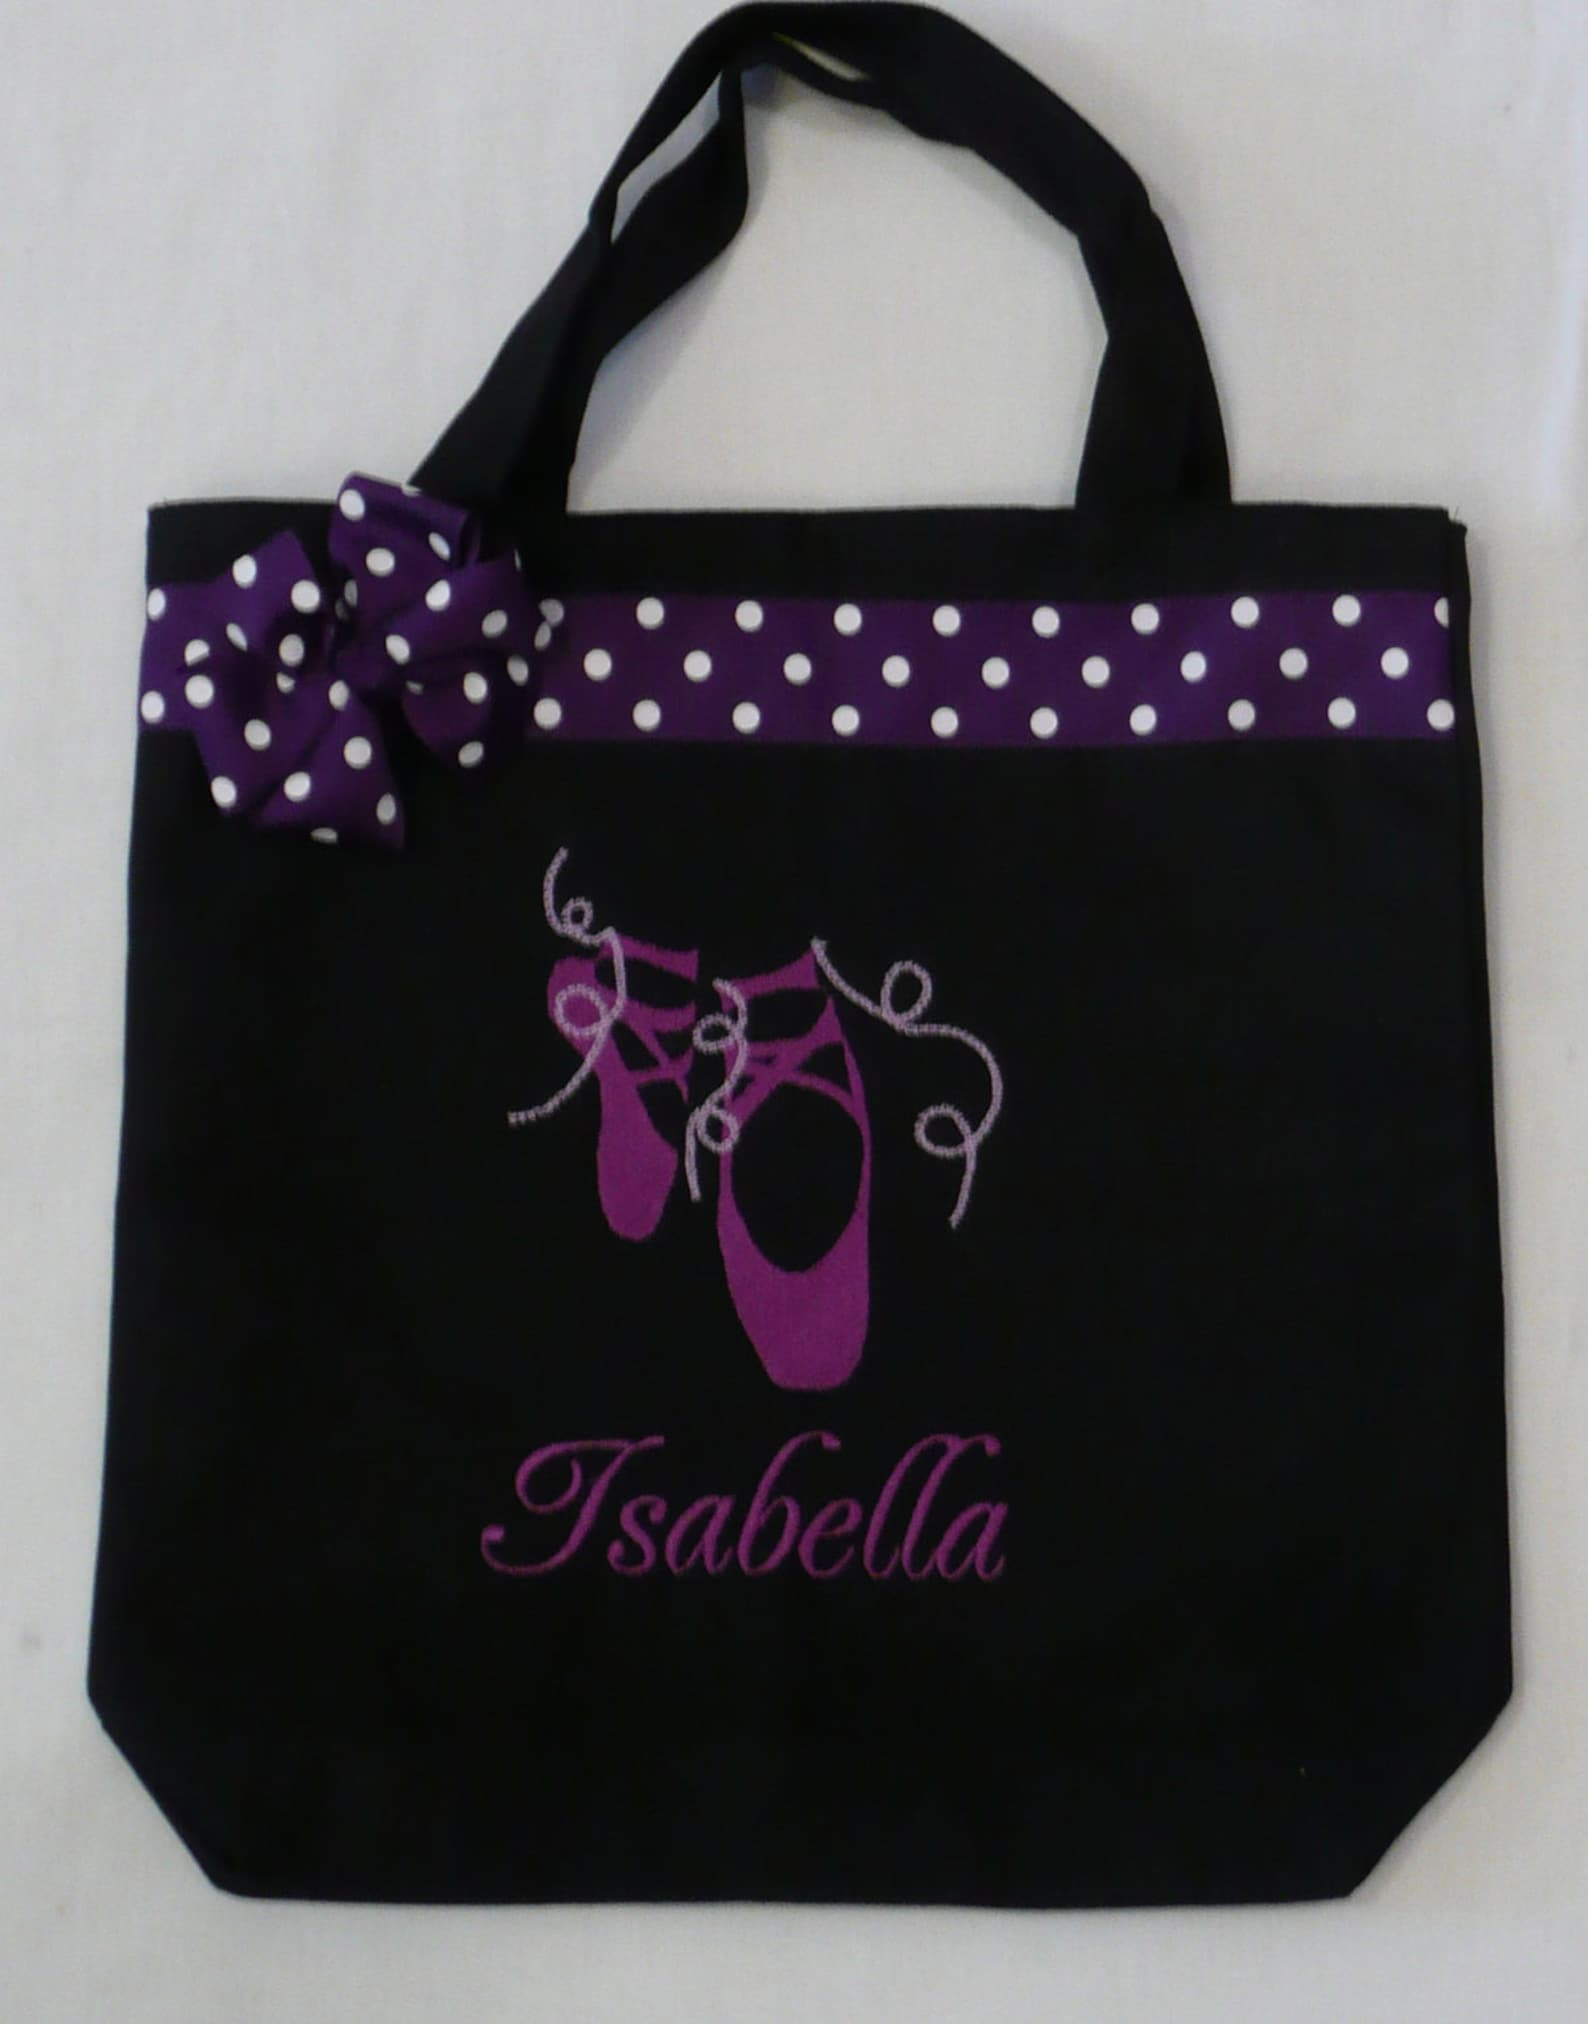 personalized tote bag, personalized tote, dance tote bag, ballerina tote, ballet gift, personalized ballet, personalized slipper